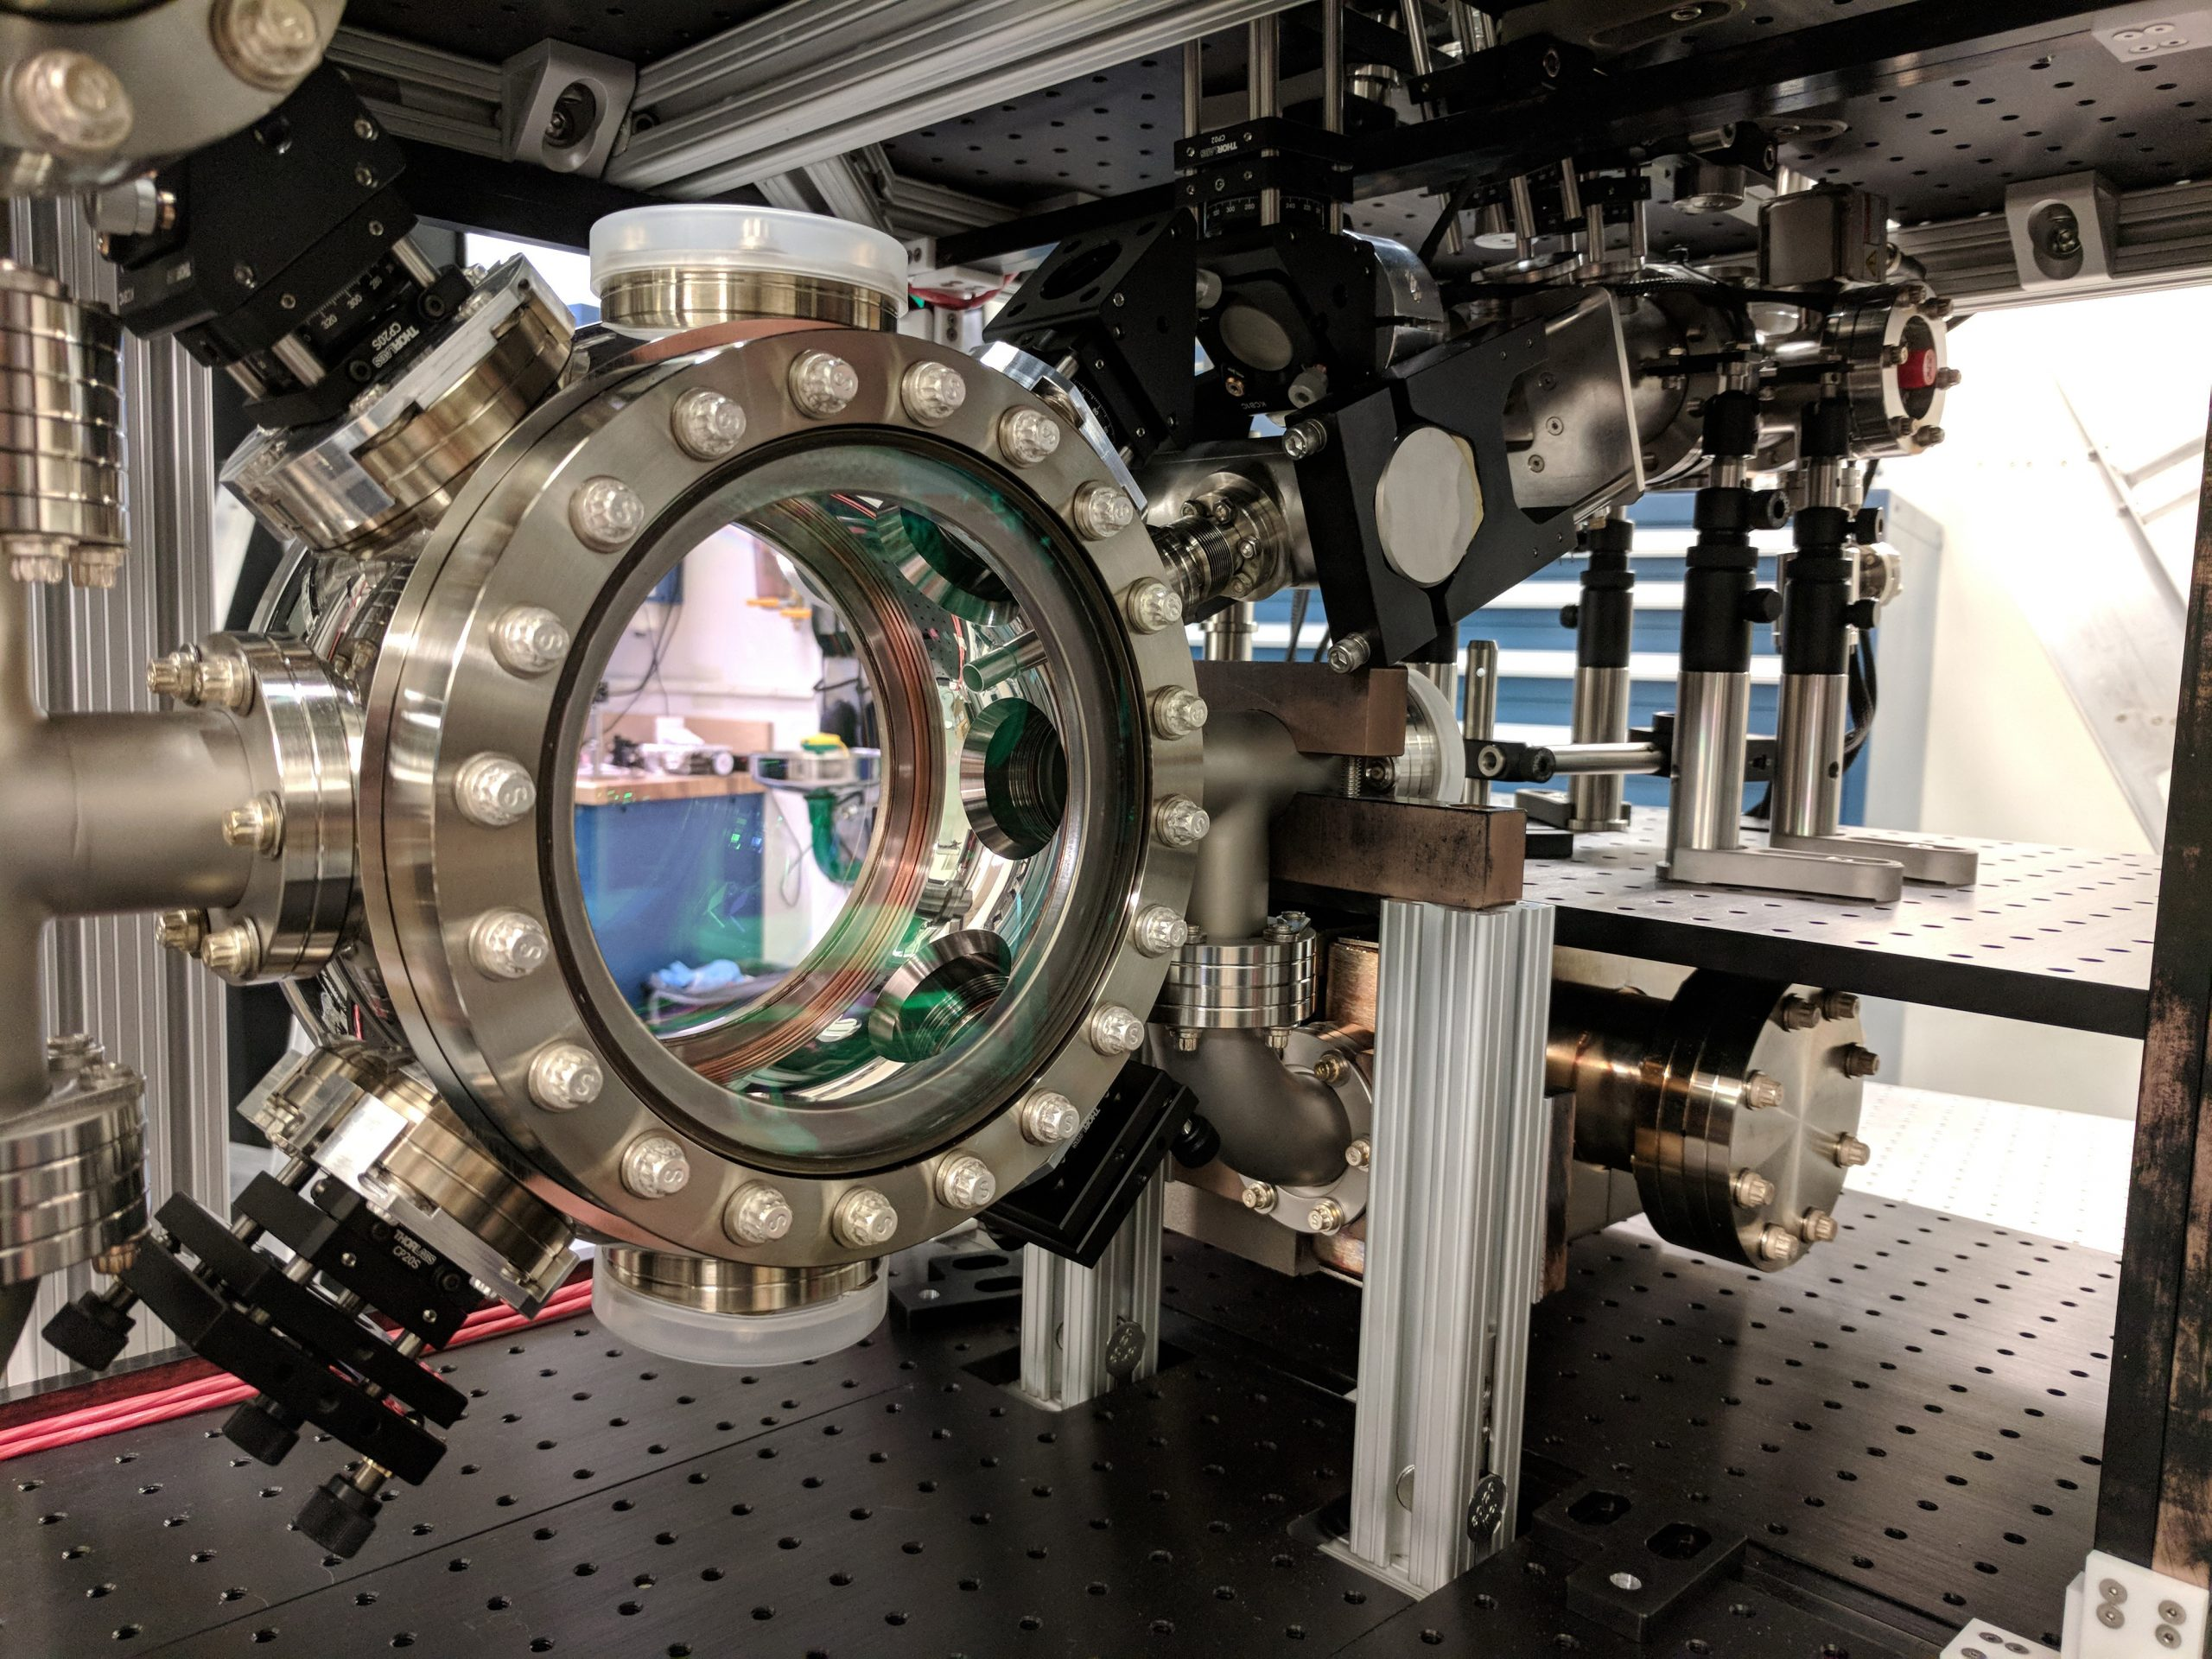 MAGIS-100: Atoms in free fall to probe dark matter, gravity and quantum science